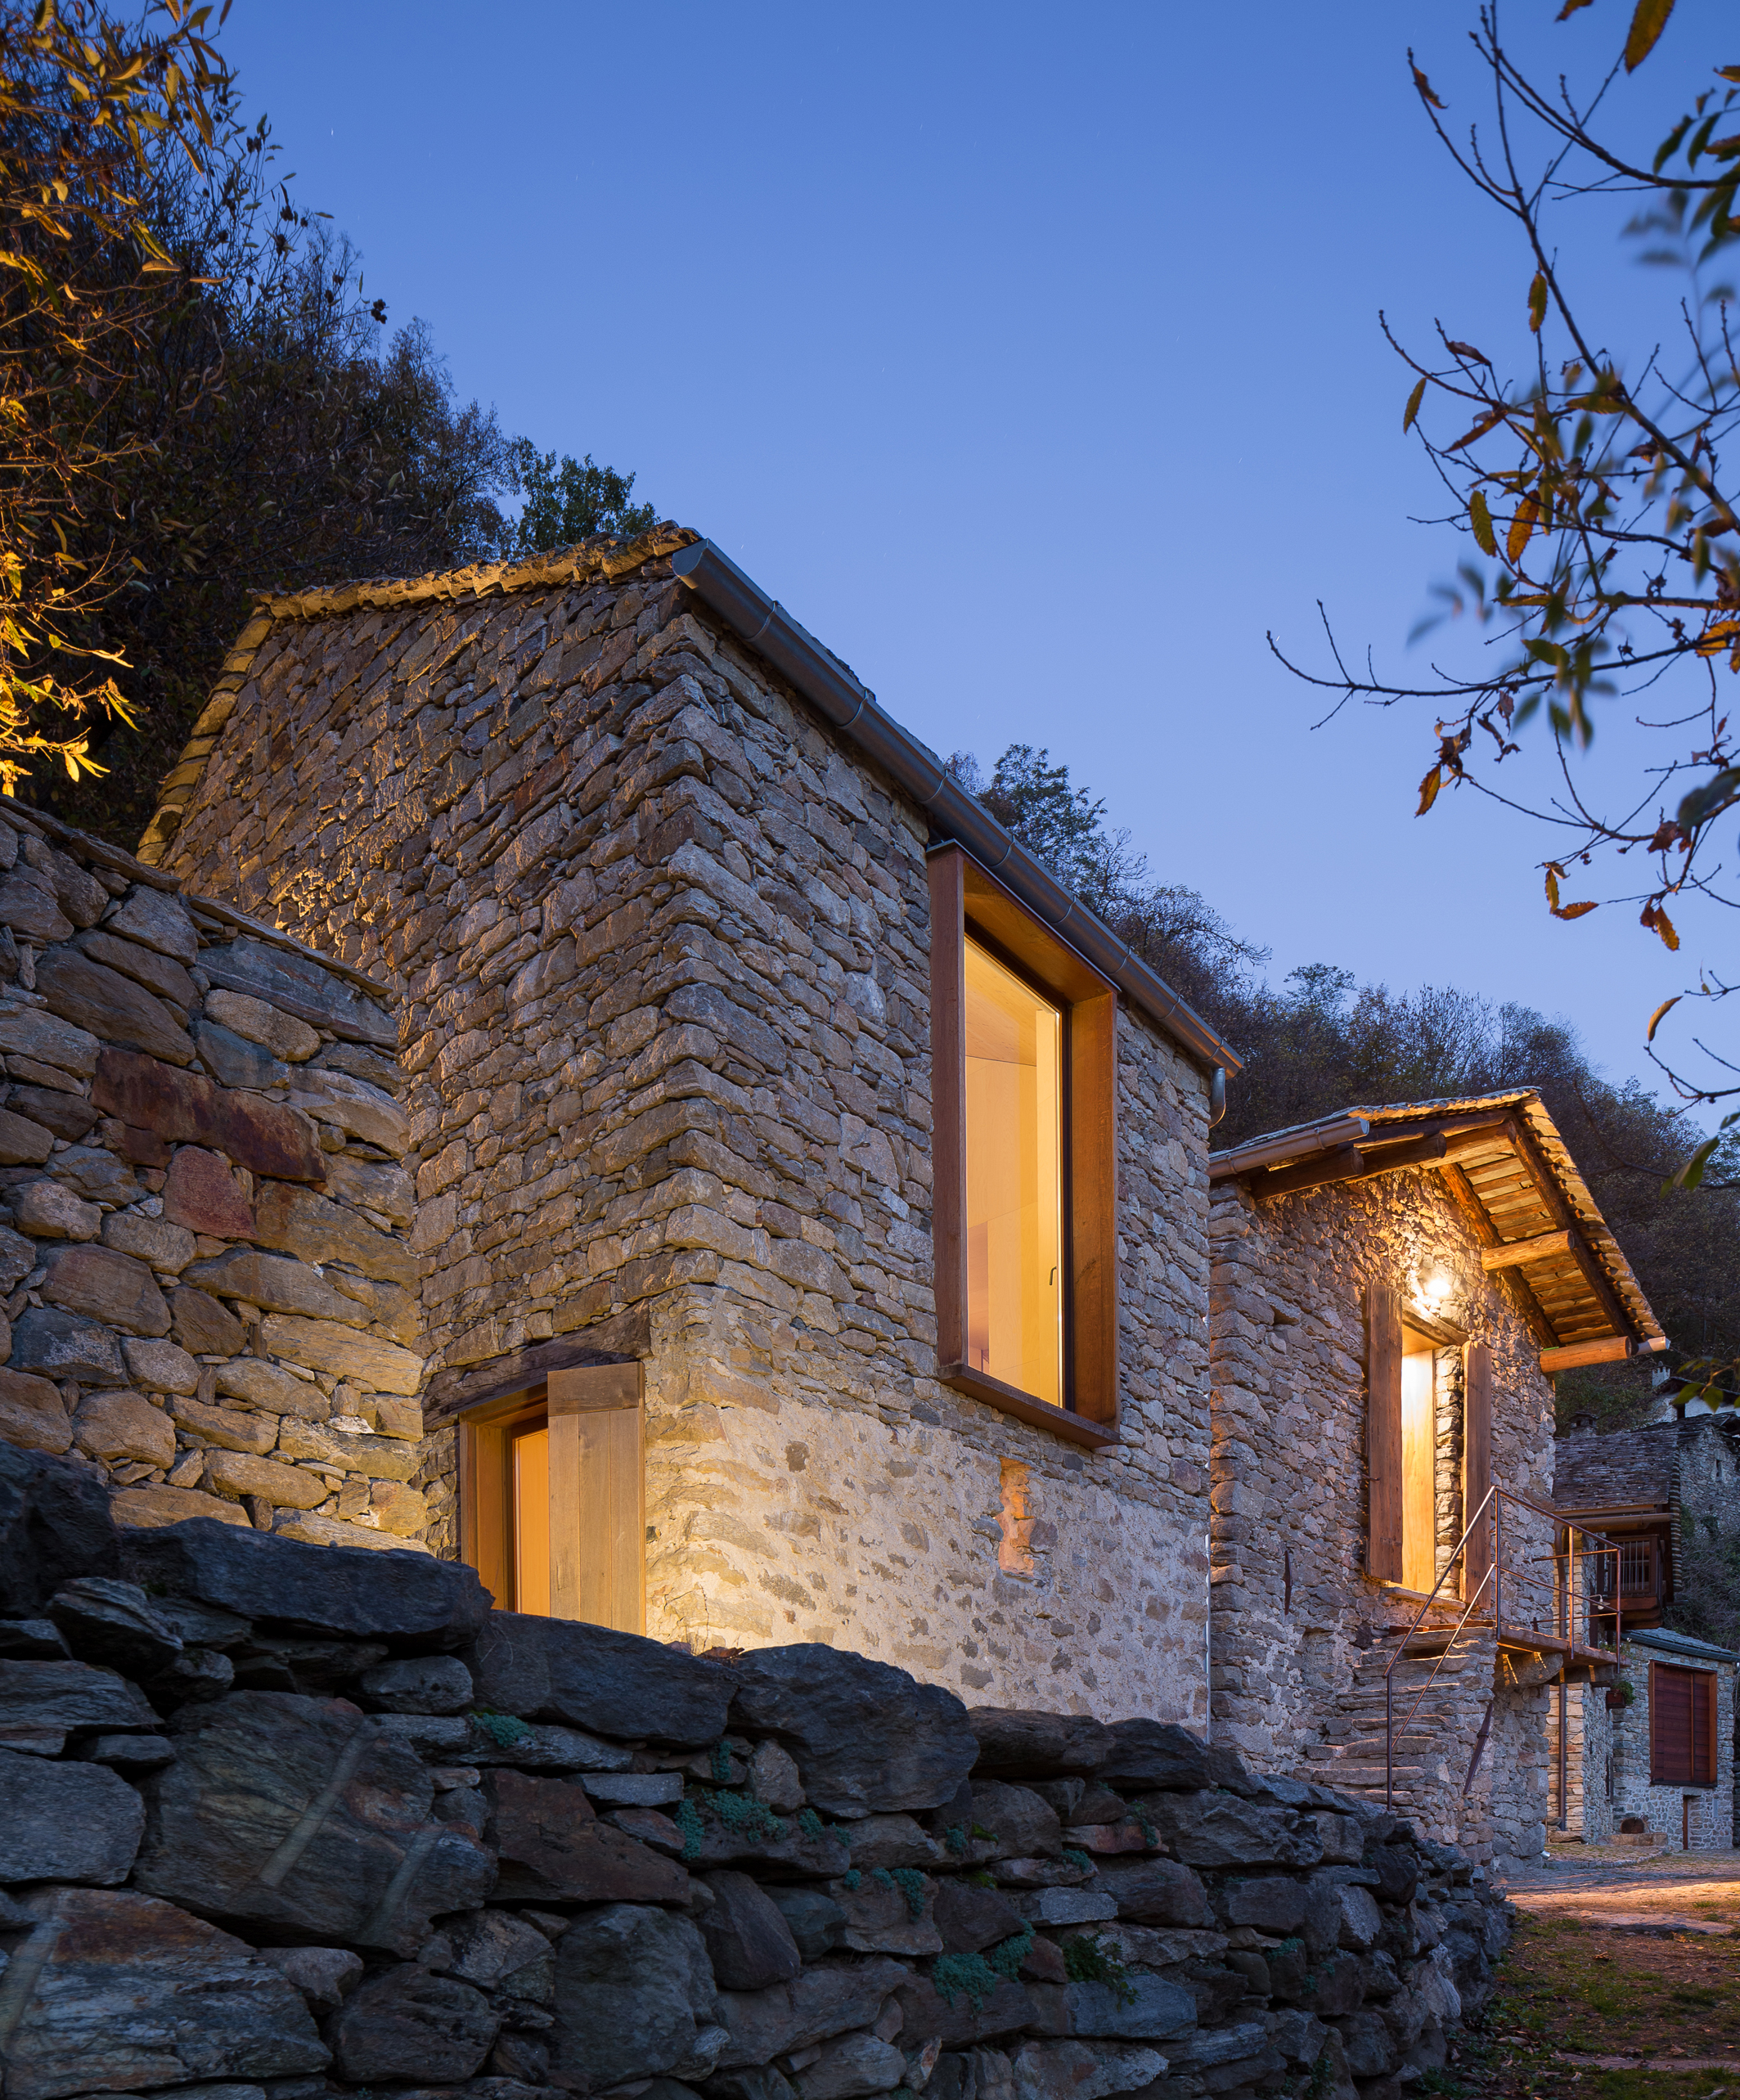 Mountain stone house vudafieri saverino partners for Modern stone houses architecture